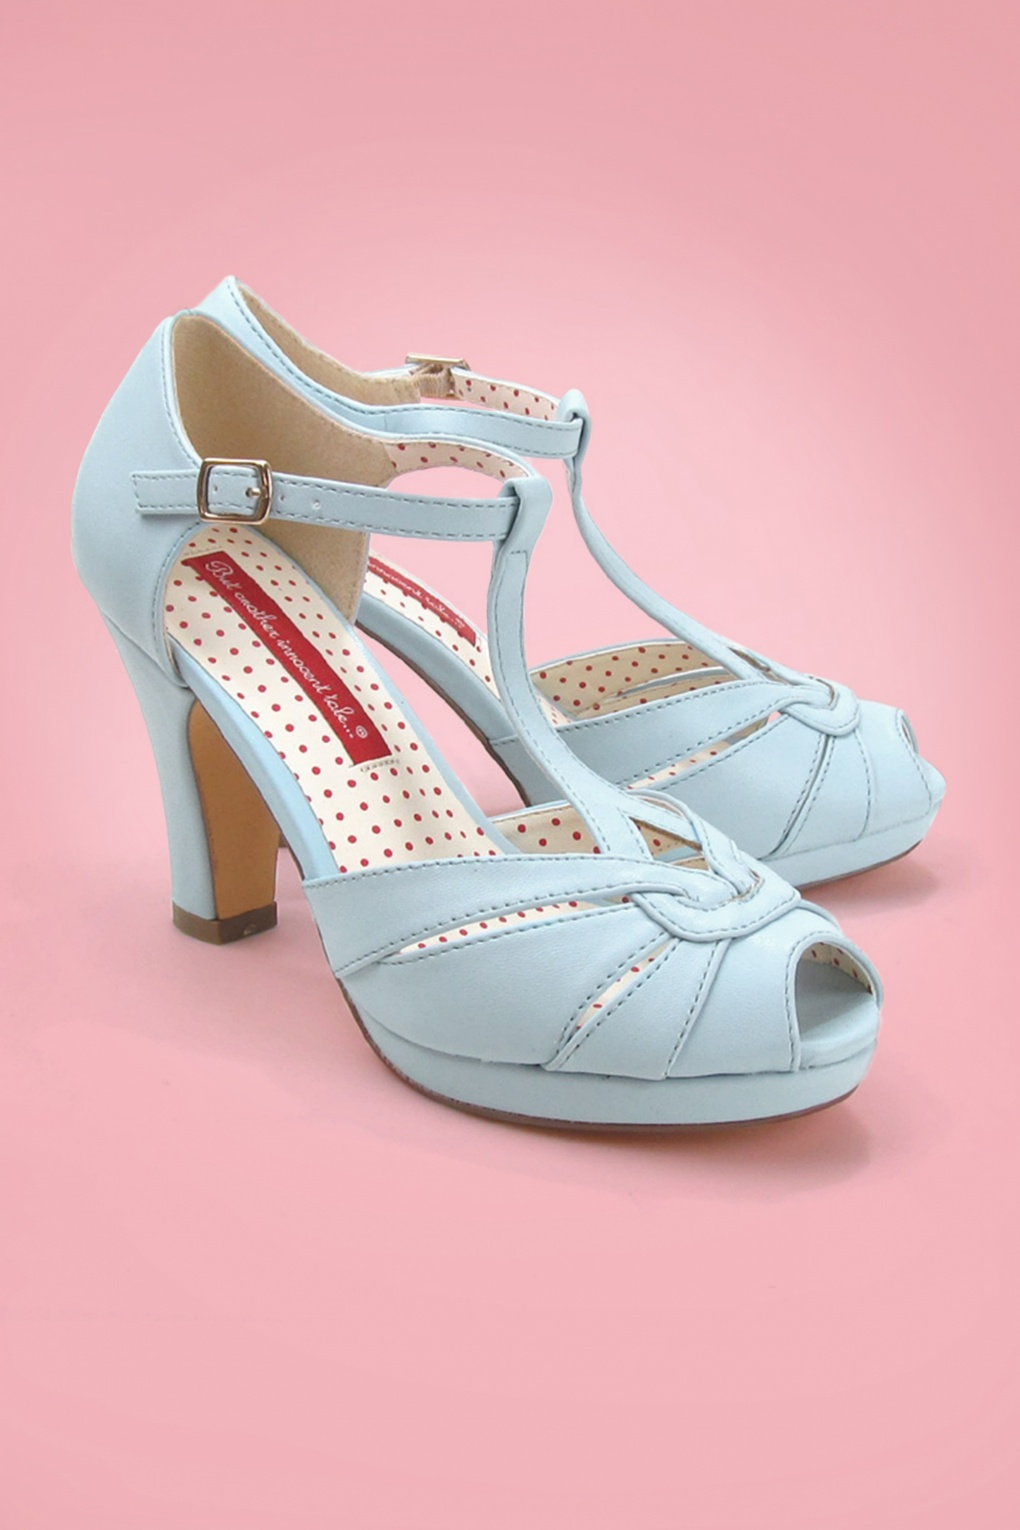 1930s Style Shoes – Art Deco Shoes 30s Lacey Art Deco T-Strap Pumps in Pale Blue �71.82 AT vintagedancer.com